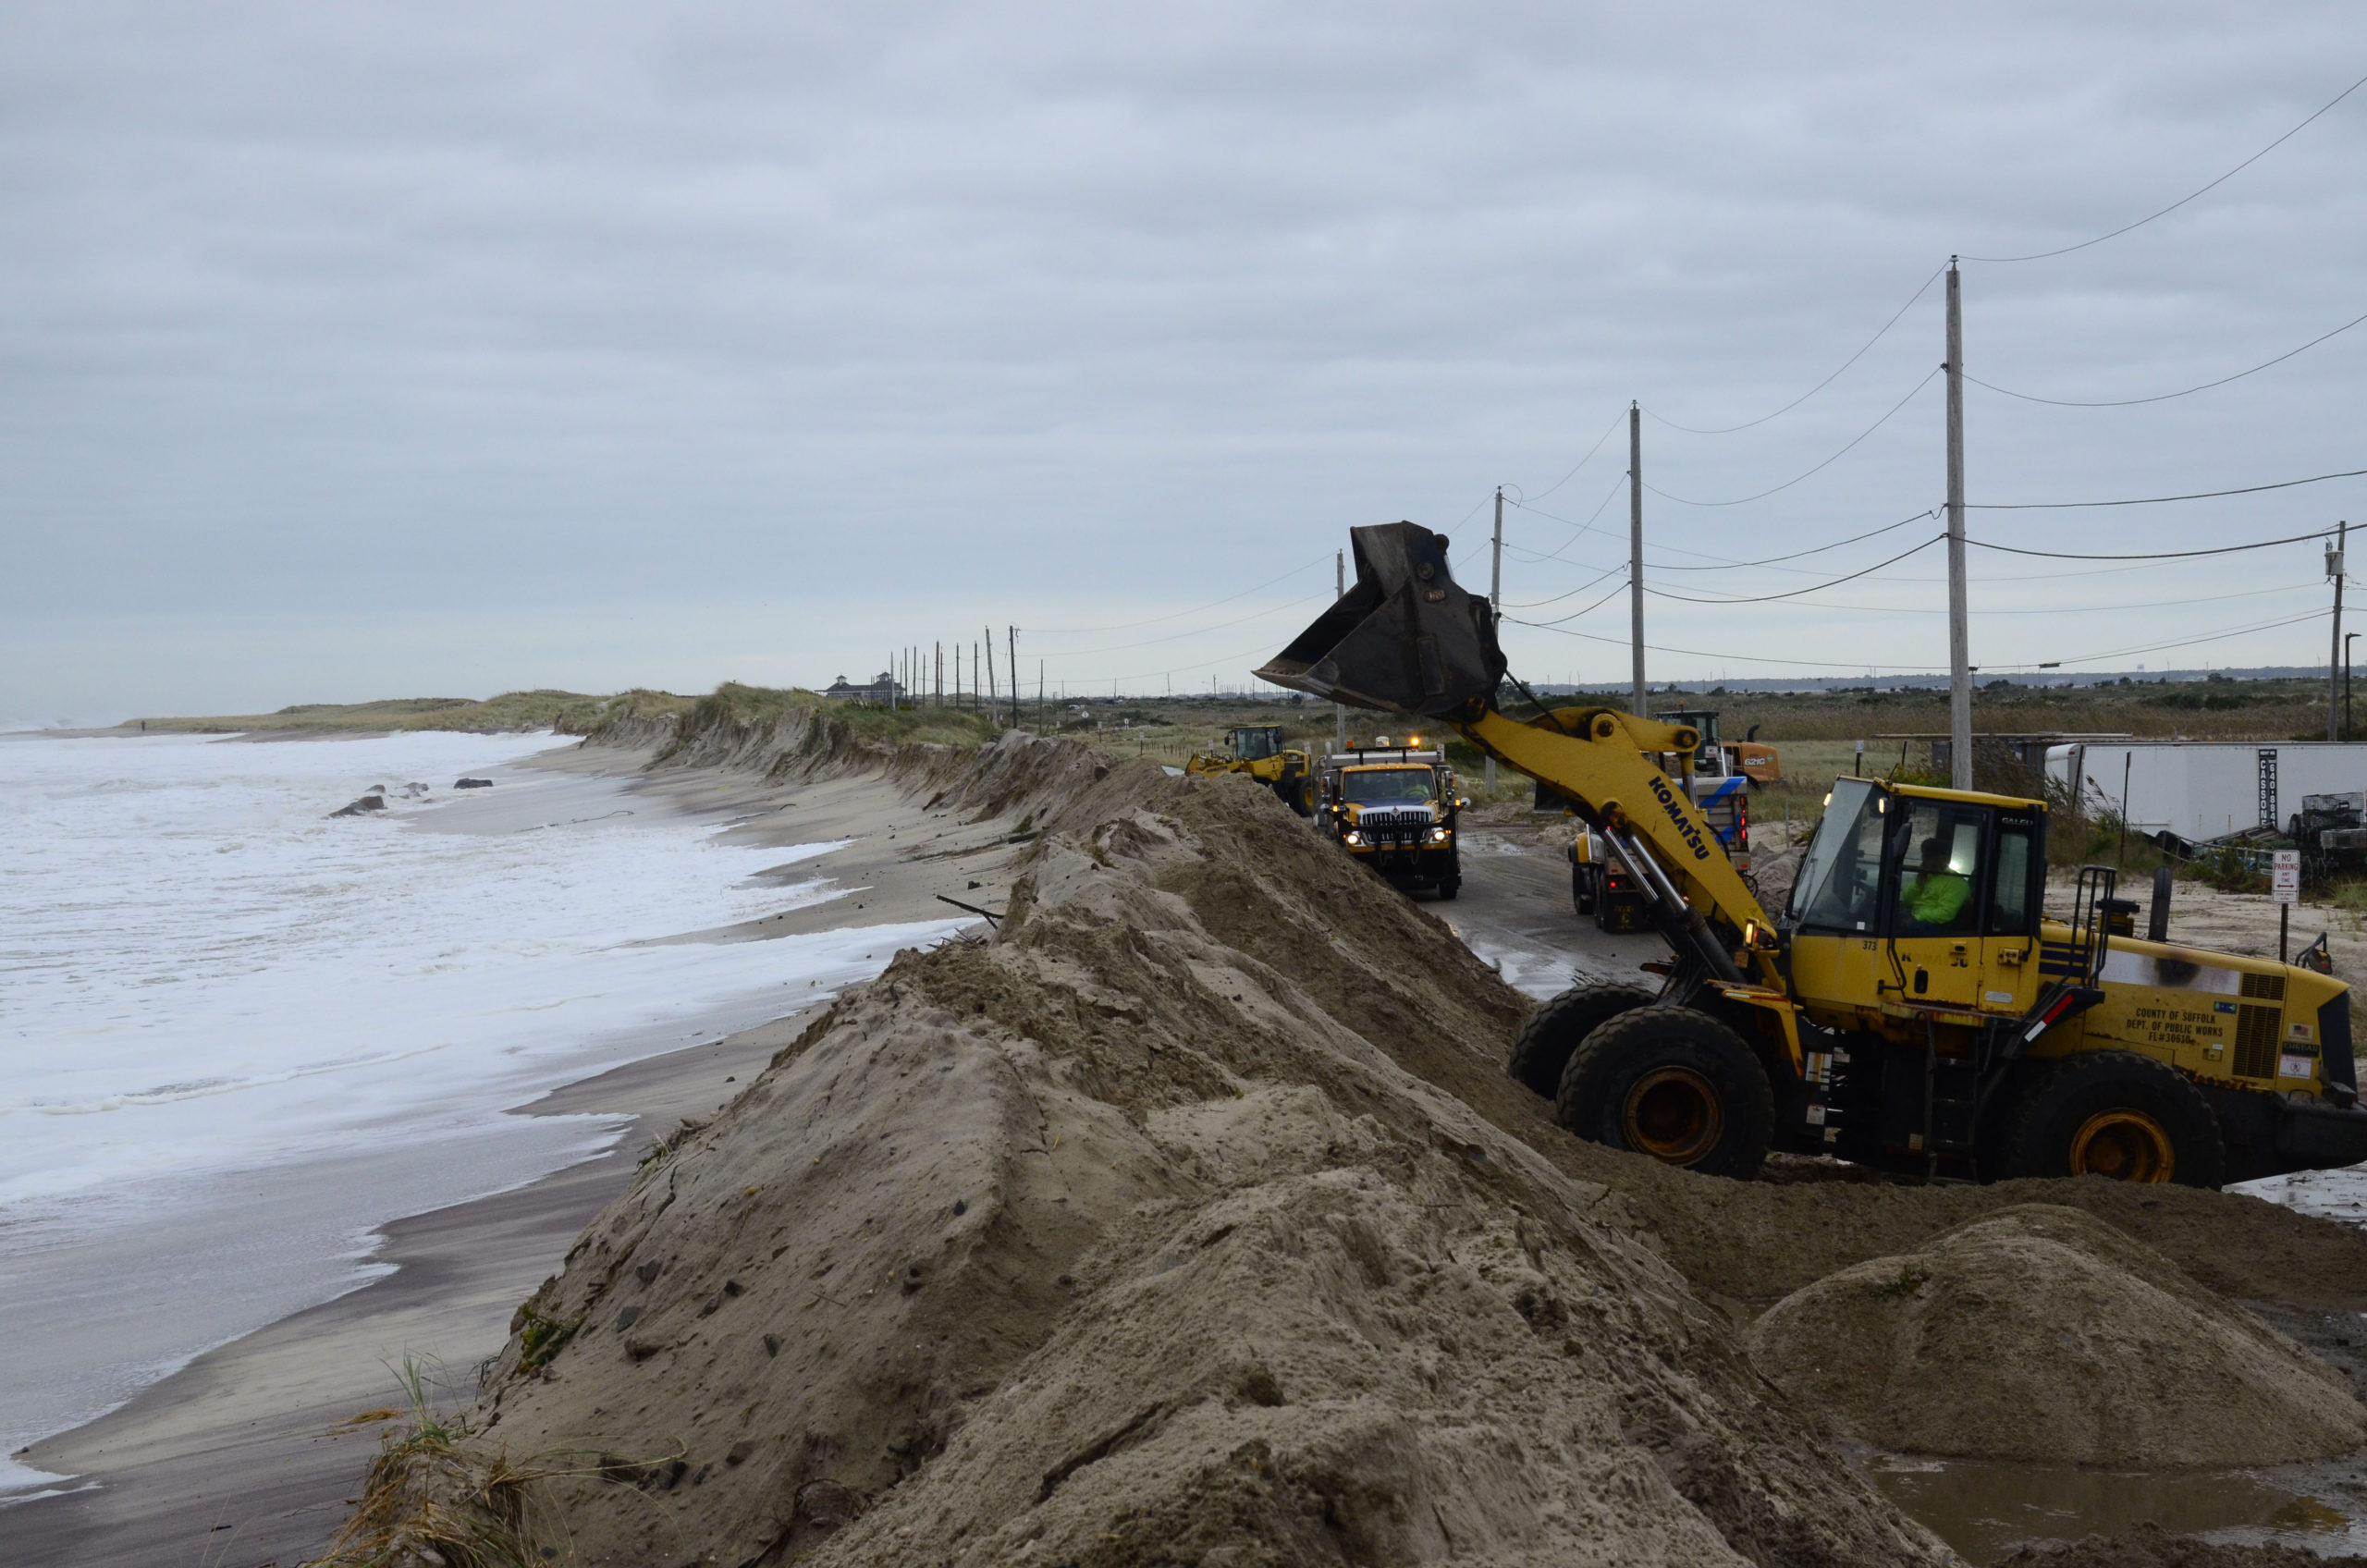 Quick Action Closes Dune Breach October 17 -- Big surf and strong winds from a nor'easter churning in the Atlantic Ocean caused a section of Dune Road near the Shinnecock Commercial Fishing Docks to experience washovers on Thursday night, October 10, prompting local, county and state agencies to pounce into action to bolster the dunes. The washovers were the result of a nearly 100-yard section of dune eroding away with the surf and tides, which were higher than normal during the storm. Last Thursday, Southampton Town Supervisor Jay Schneiderman declared a state of emergency due to severe erosion and the potential of coastal flooding along the eastern end of Dune Road, in anticipation of the nor'easter. The declaration allowed the town to accelerate any required coordination with the State Department of Environmental Conservation to move sand and rebuild the dune. It also allowed the town to request assistance from the Suffolk County Department of Public Works to bring in heavy equipment to reconstruct the dune.